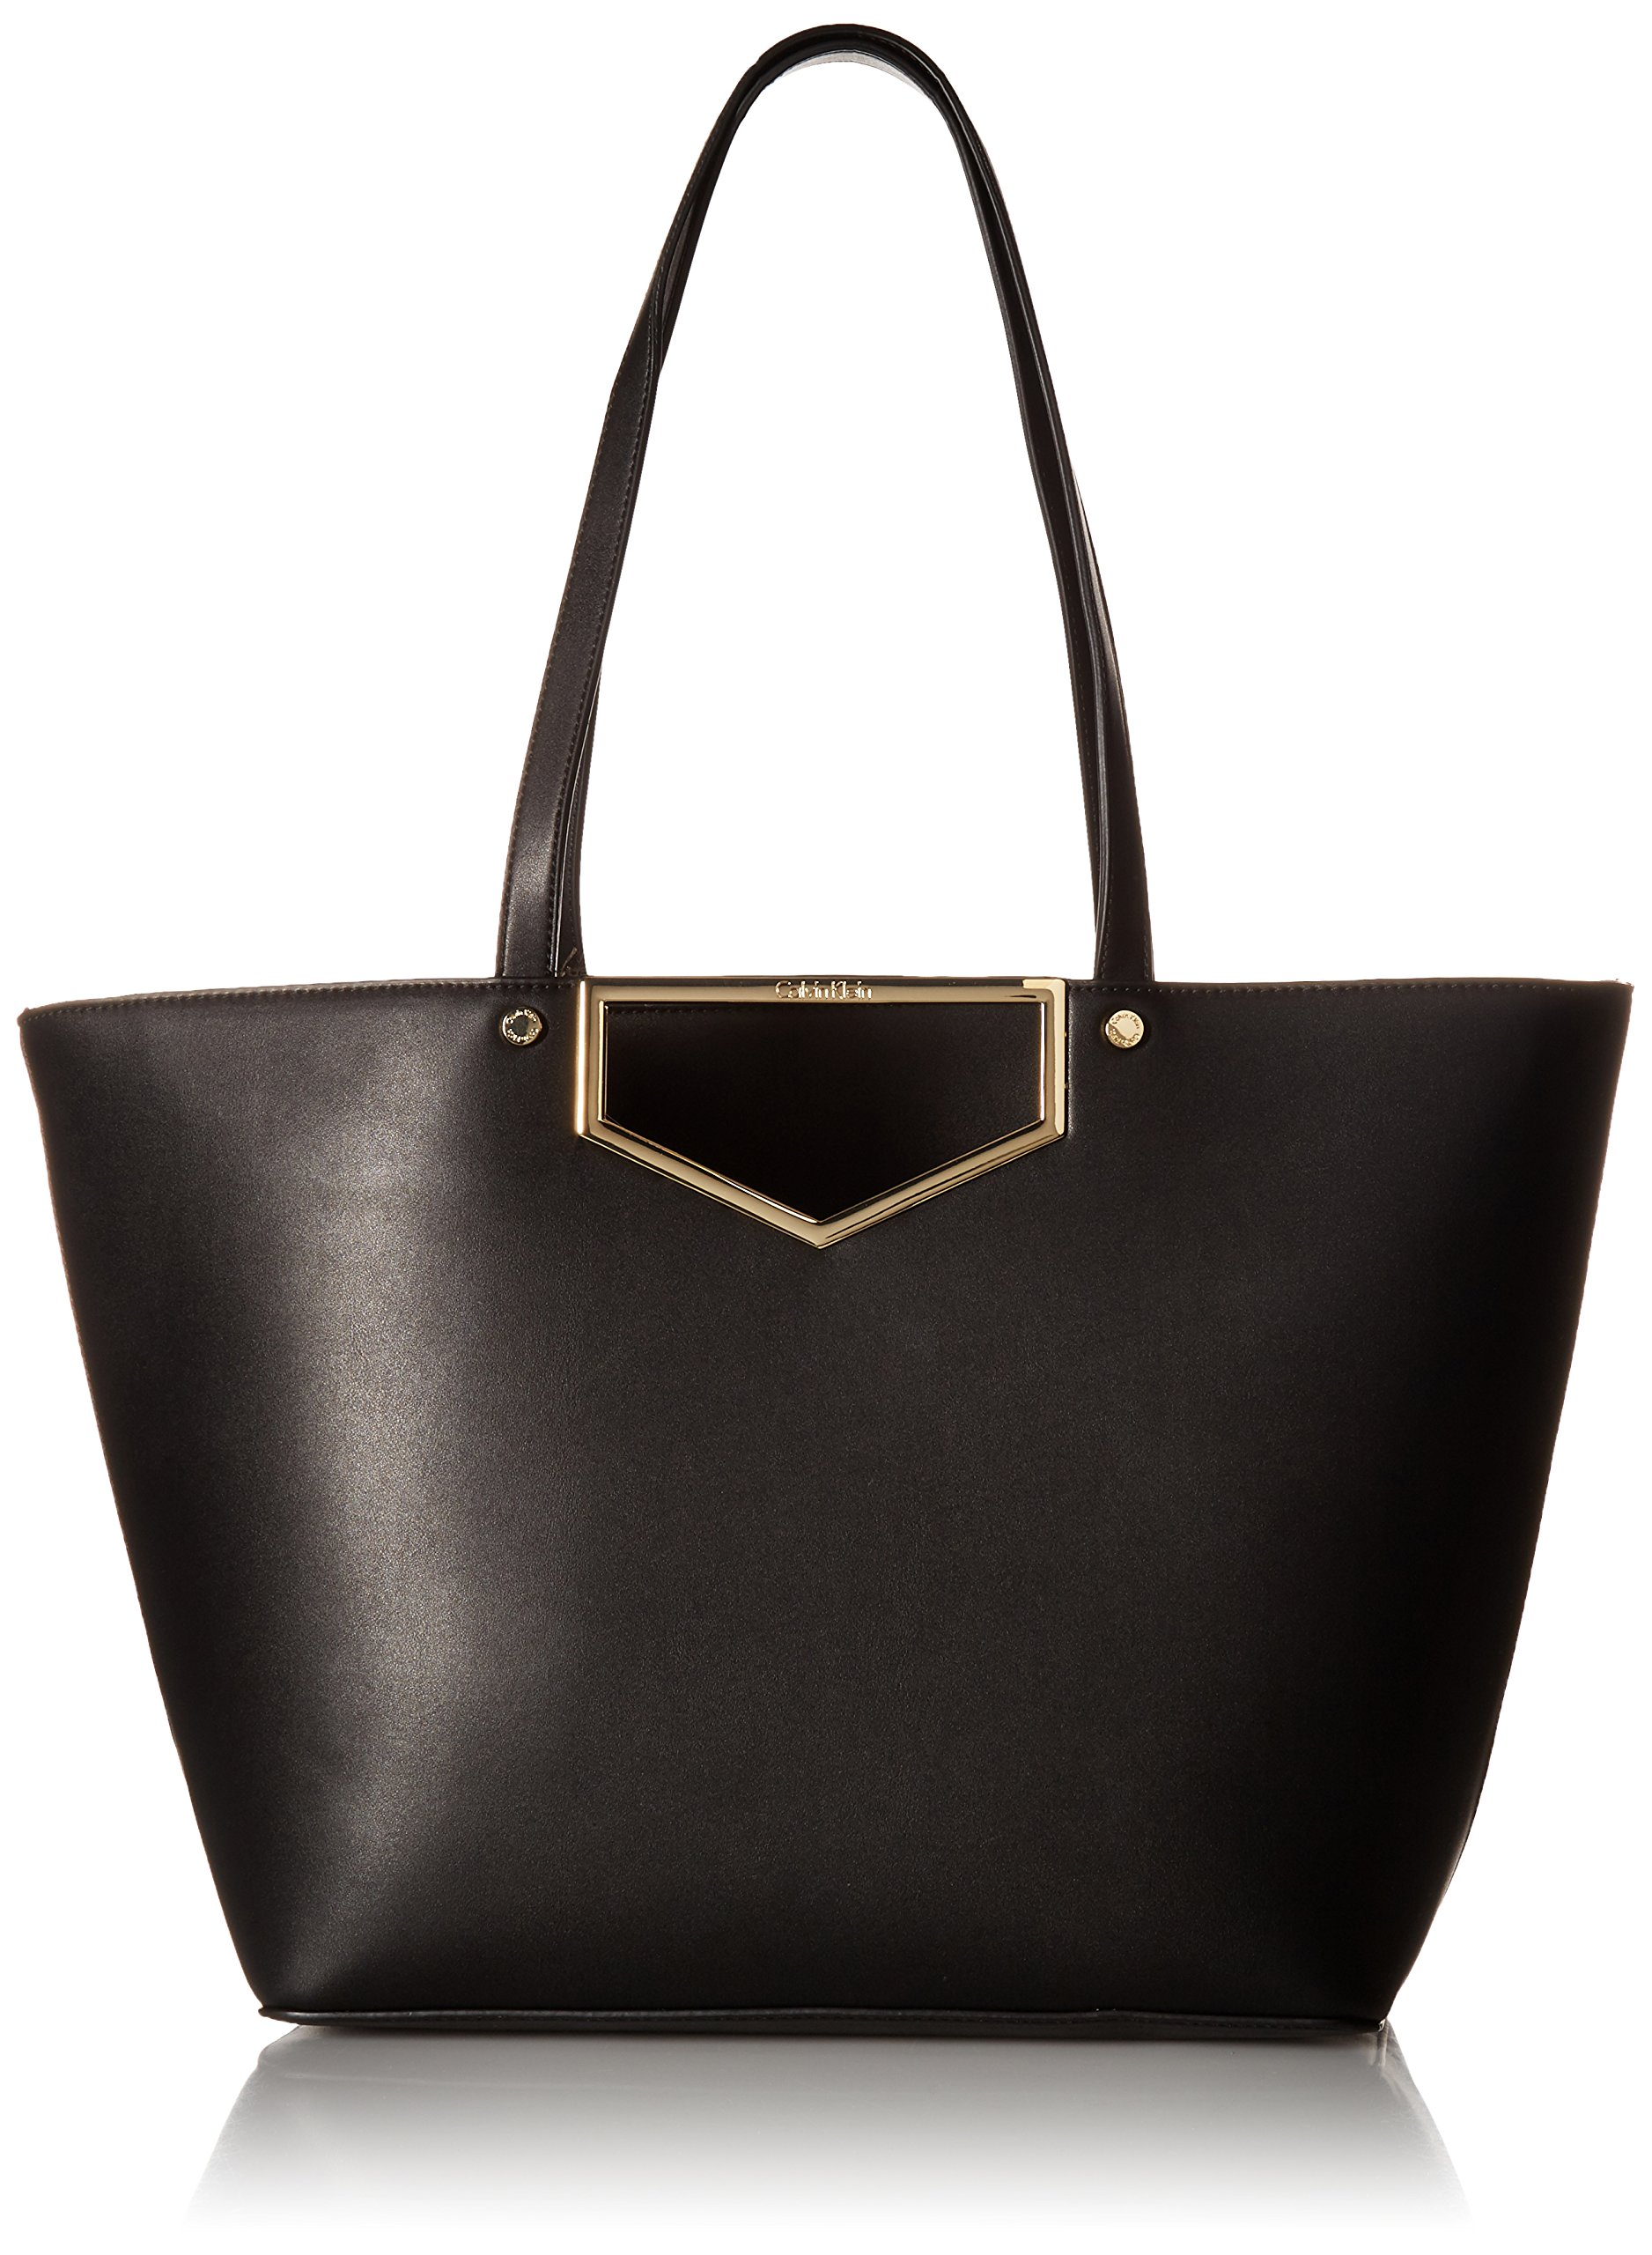 Calvin Klein Novelty Cut Out Hardware Tote, Black/Gold by Calvin Klein